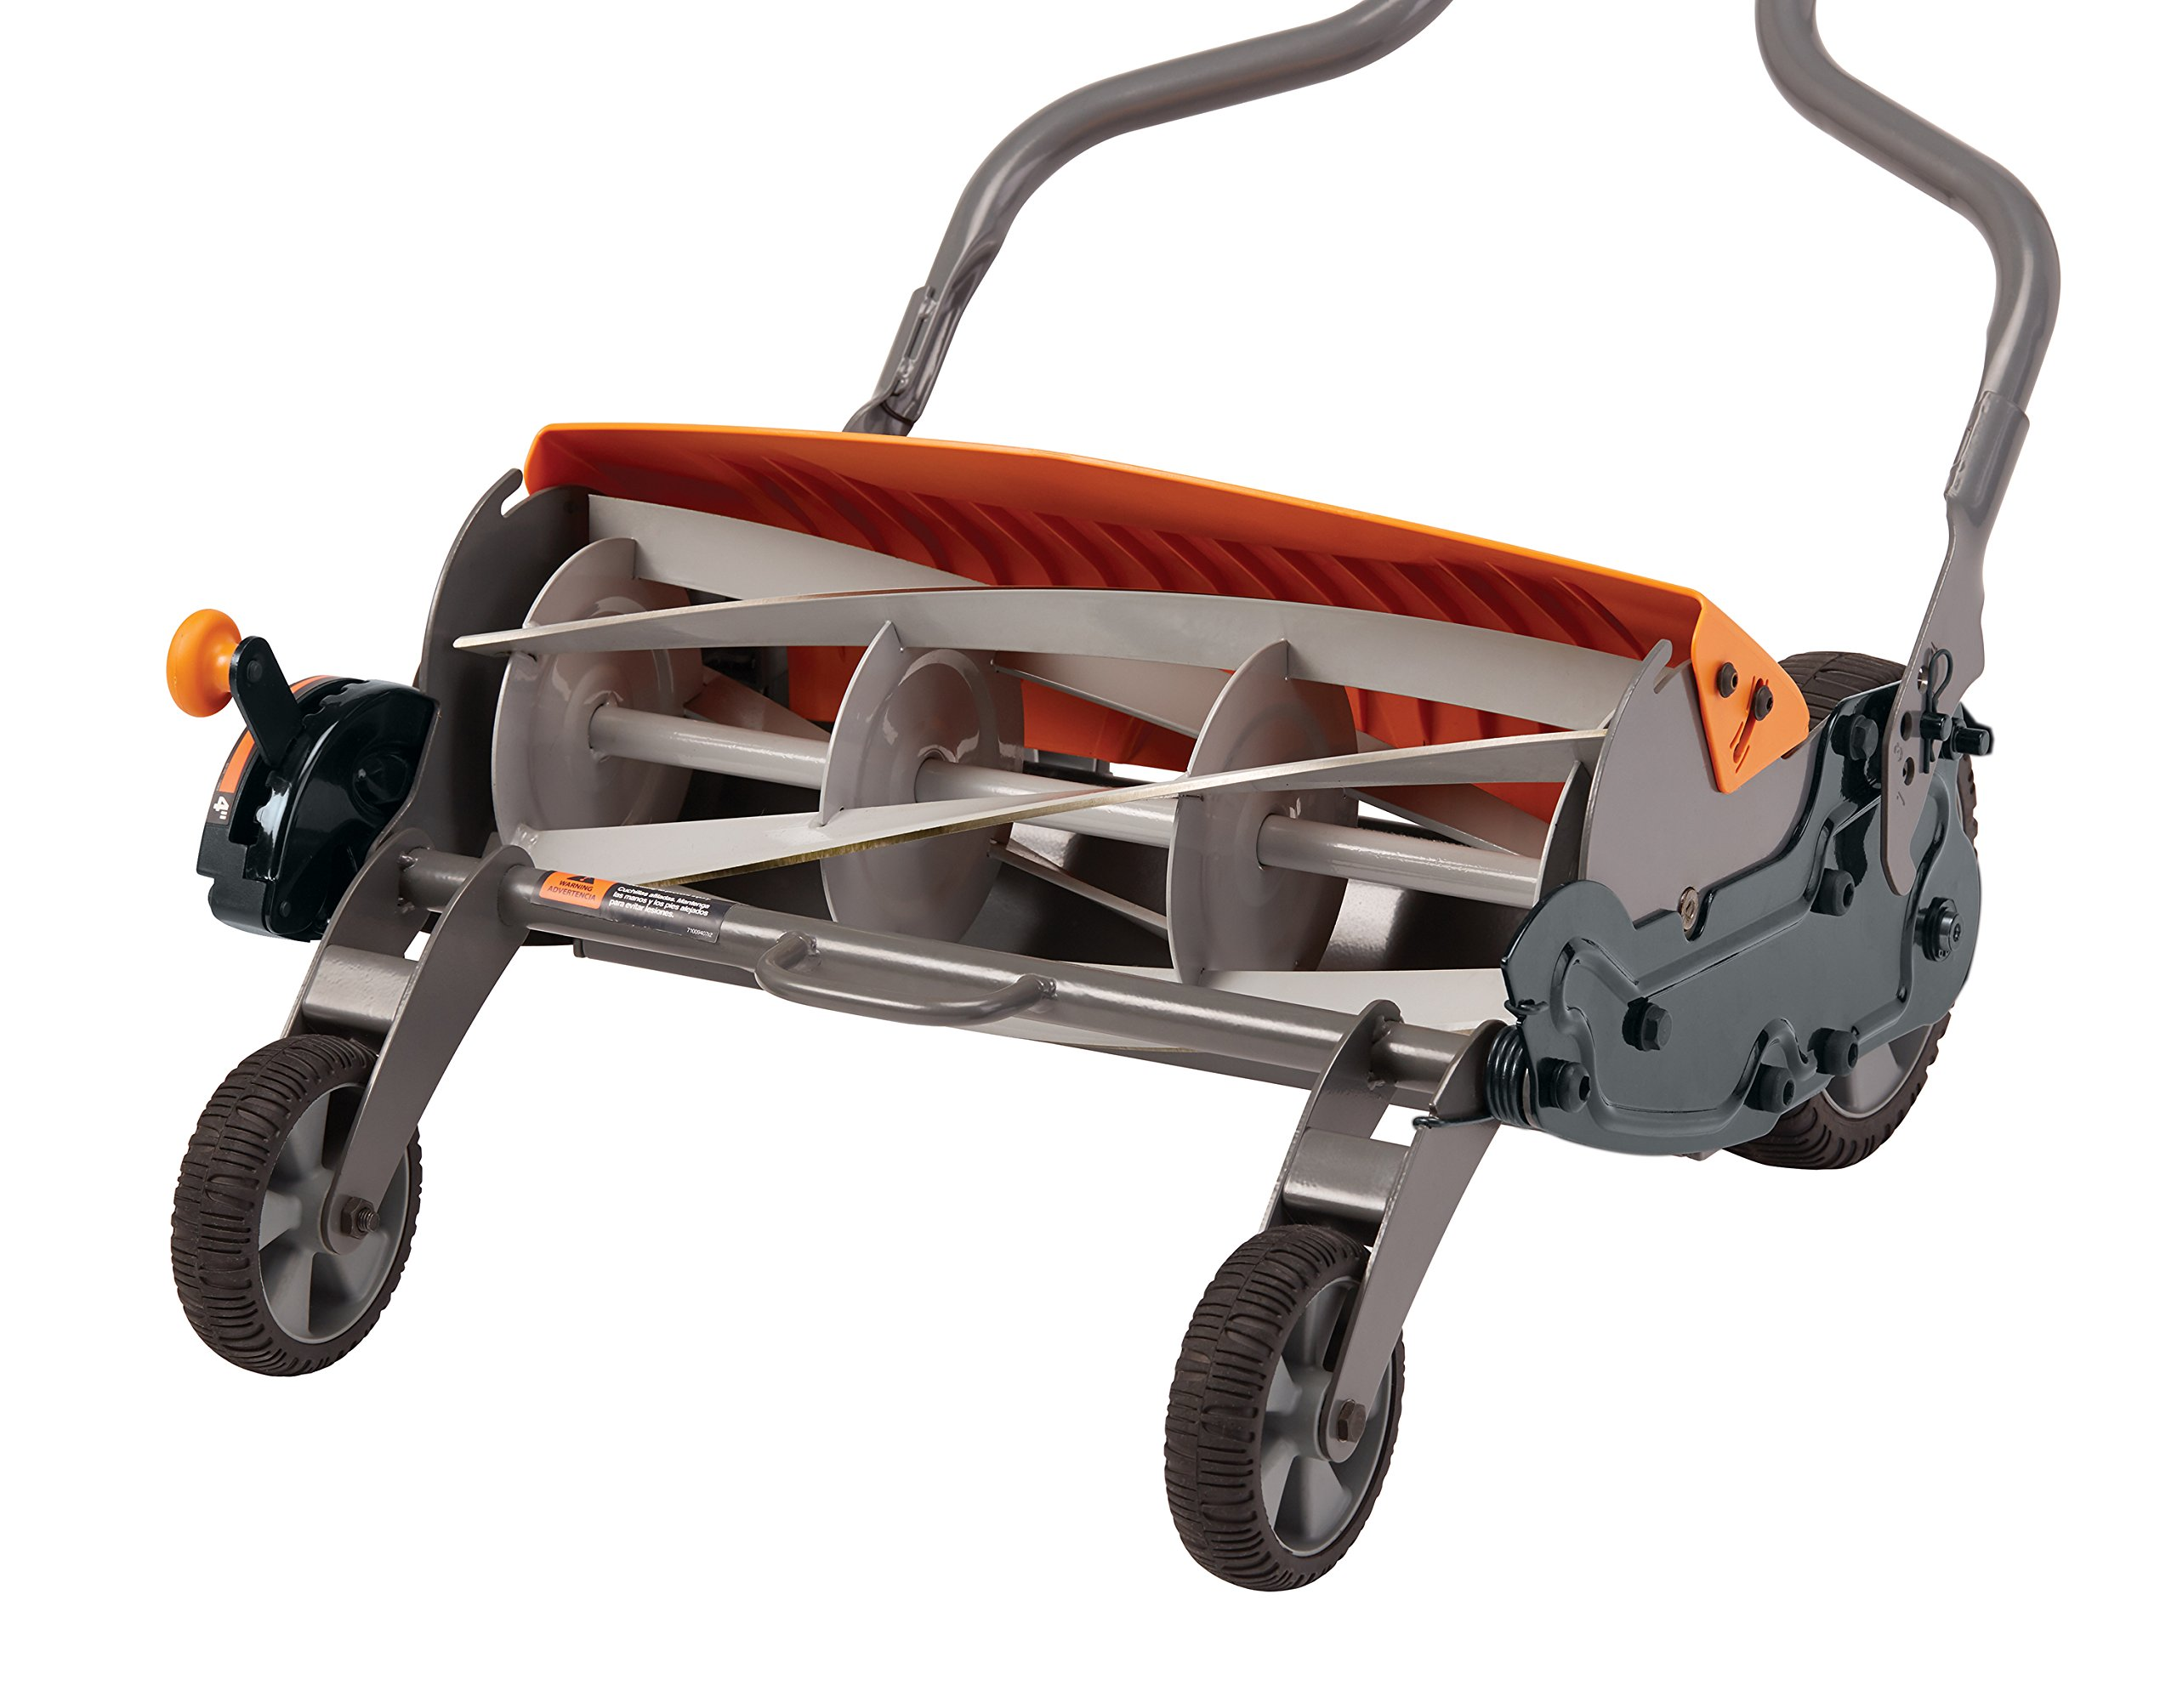 Fiskars staysharp max reel mower 2 the smart design of reel mower offers a cleaner cut without the hassles of gasoline, oil, battery charging, electrical cords or loud engine noise a combination of advanced technologies make the staysharp plus reel mower 40-percent easier to push than other reel mowers patent-pending inertia drive reel delivers 75-percent more cutting power to blast through twigs, weeds and tough spots that would jam other reel mowers